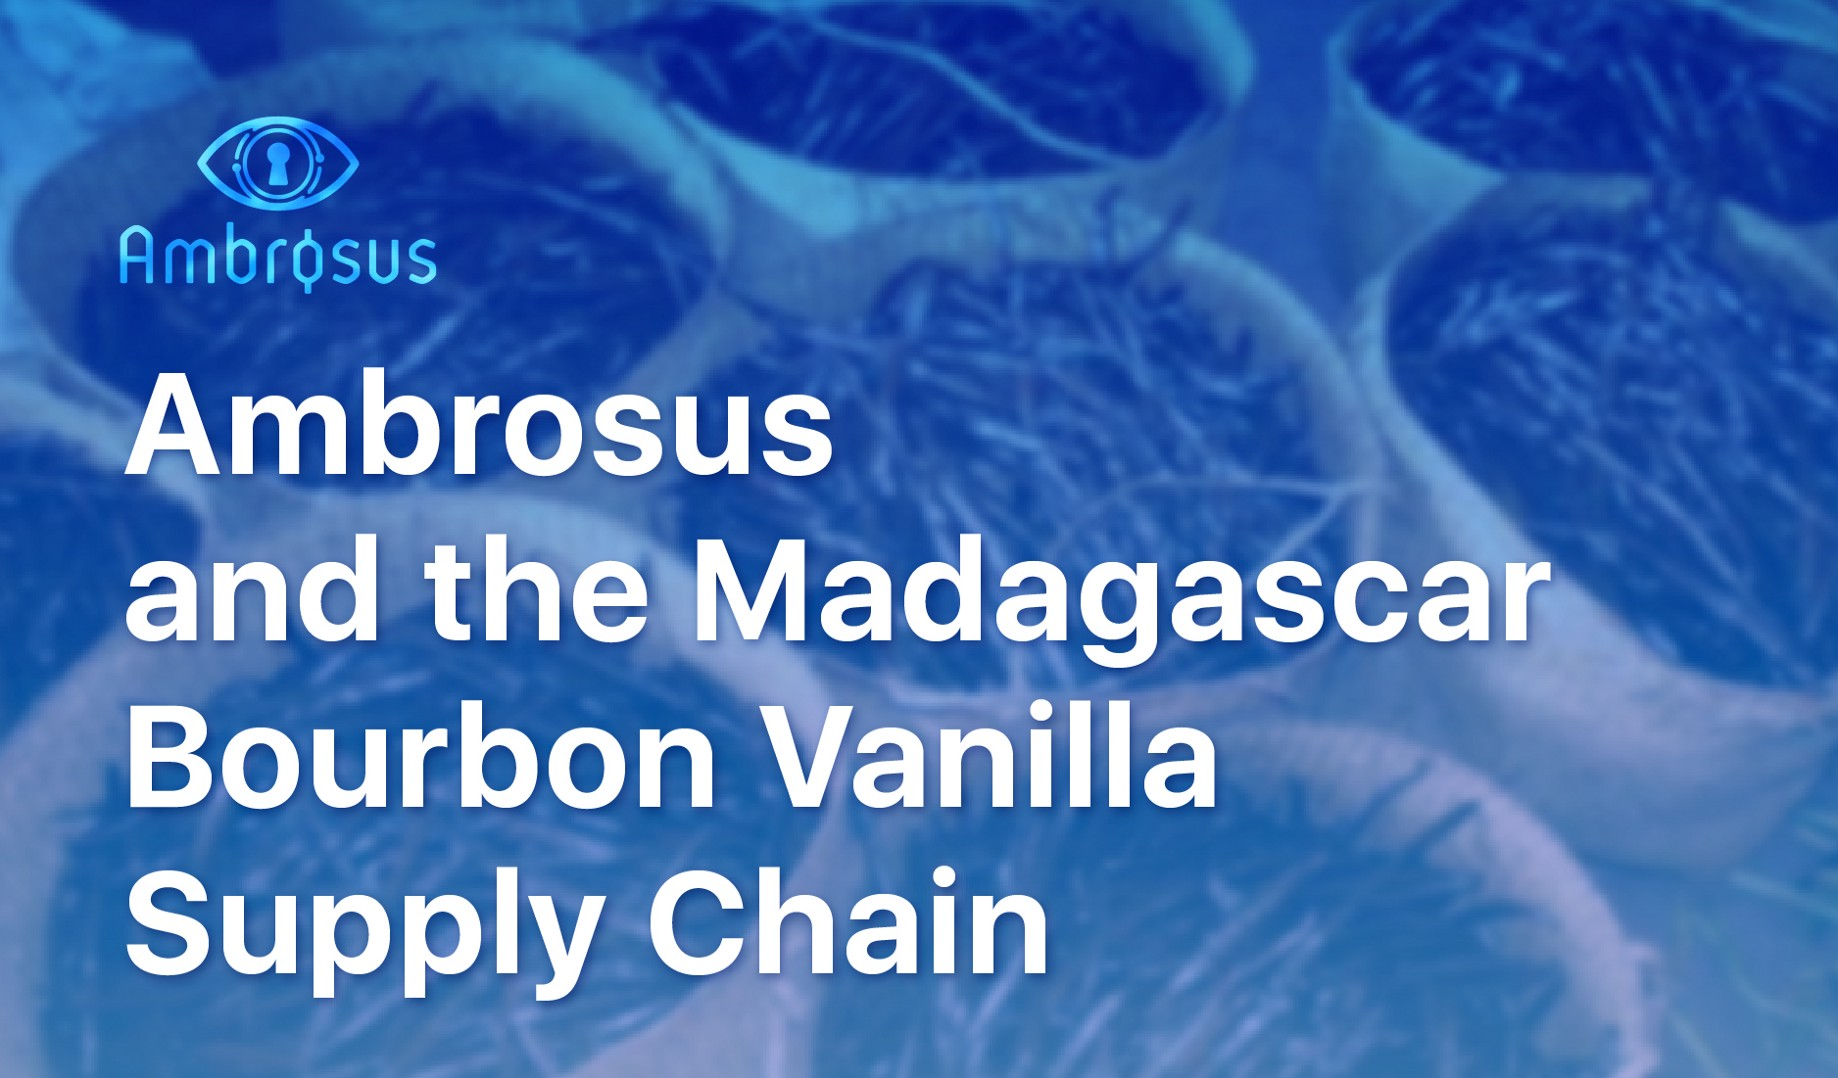 In-Depth: the Madagascar Bourbon Vanilla Supply Chain on AMB-NET